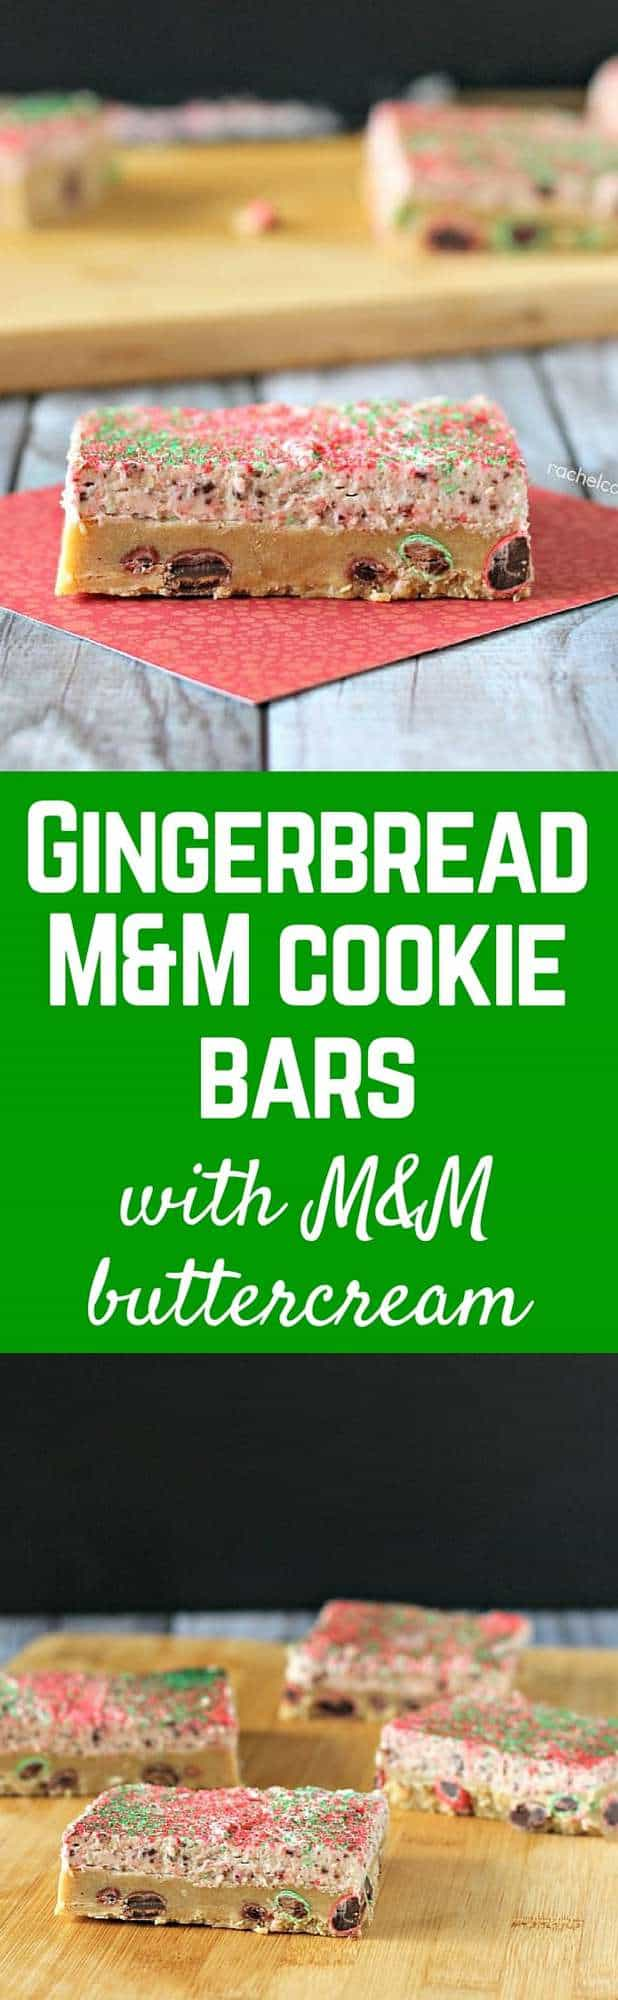 With M&M's in both the bars and the frosting, these Gingerbread M&M Cookie Bars with Gingerbread M&M Buttercream will be your new go-to Gingerbread recipe. Get the recipe on RachelCooks.com!